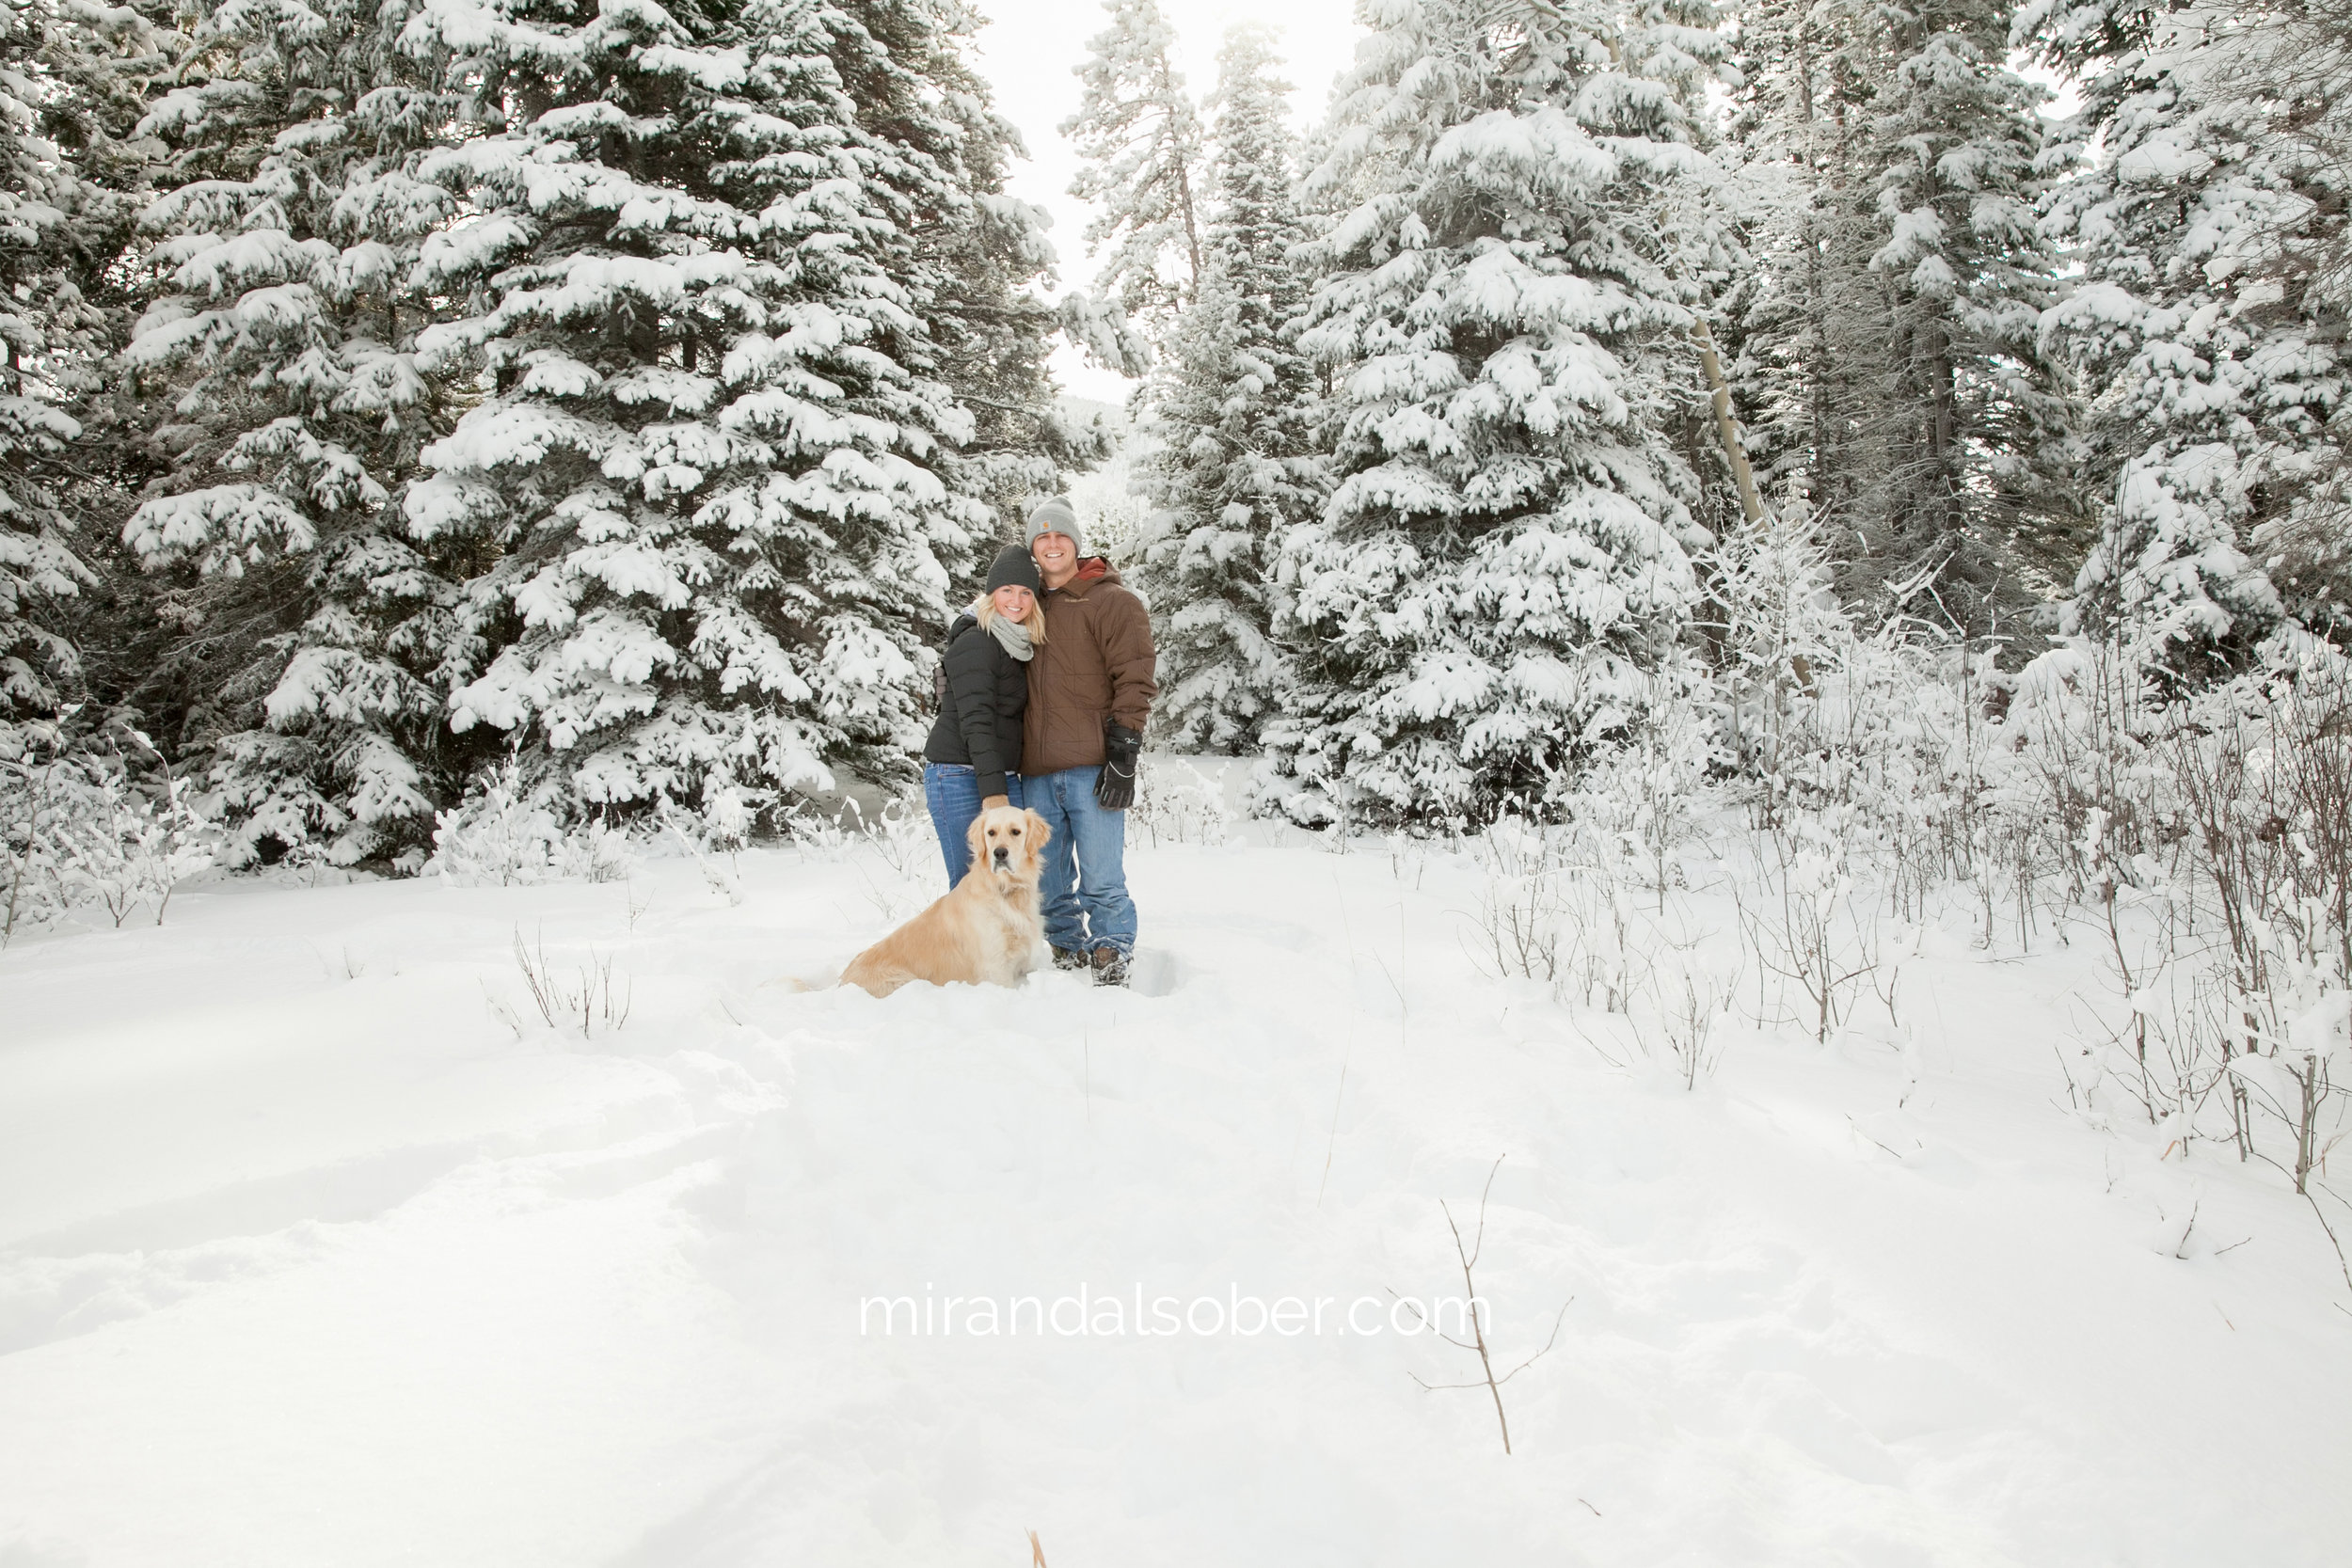 Fort Collins lifestyle photographer, personal blog post, Our Christmas Tree